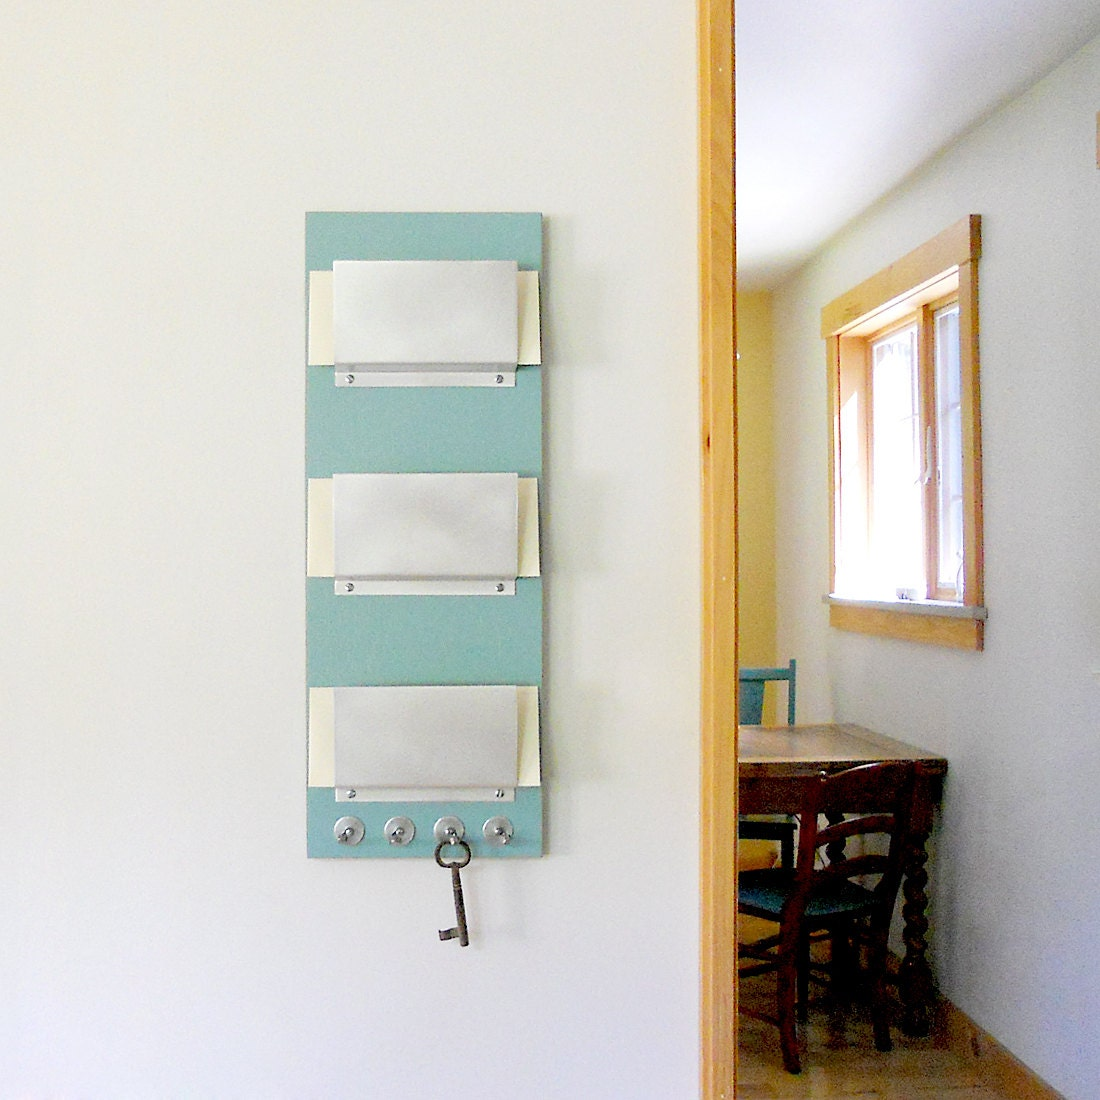 TRIPLE MAIL HOLDER Wall Mount Family 3 Slot Mail Organizer